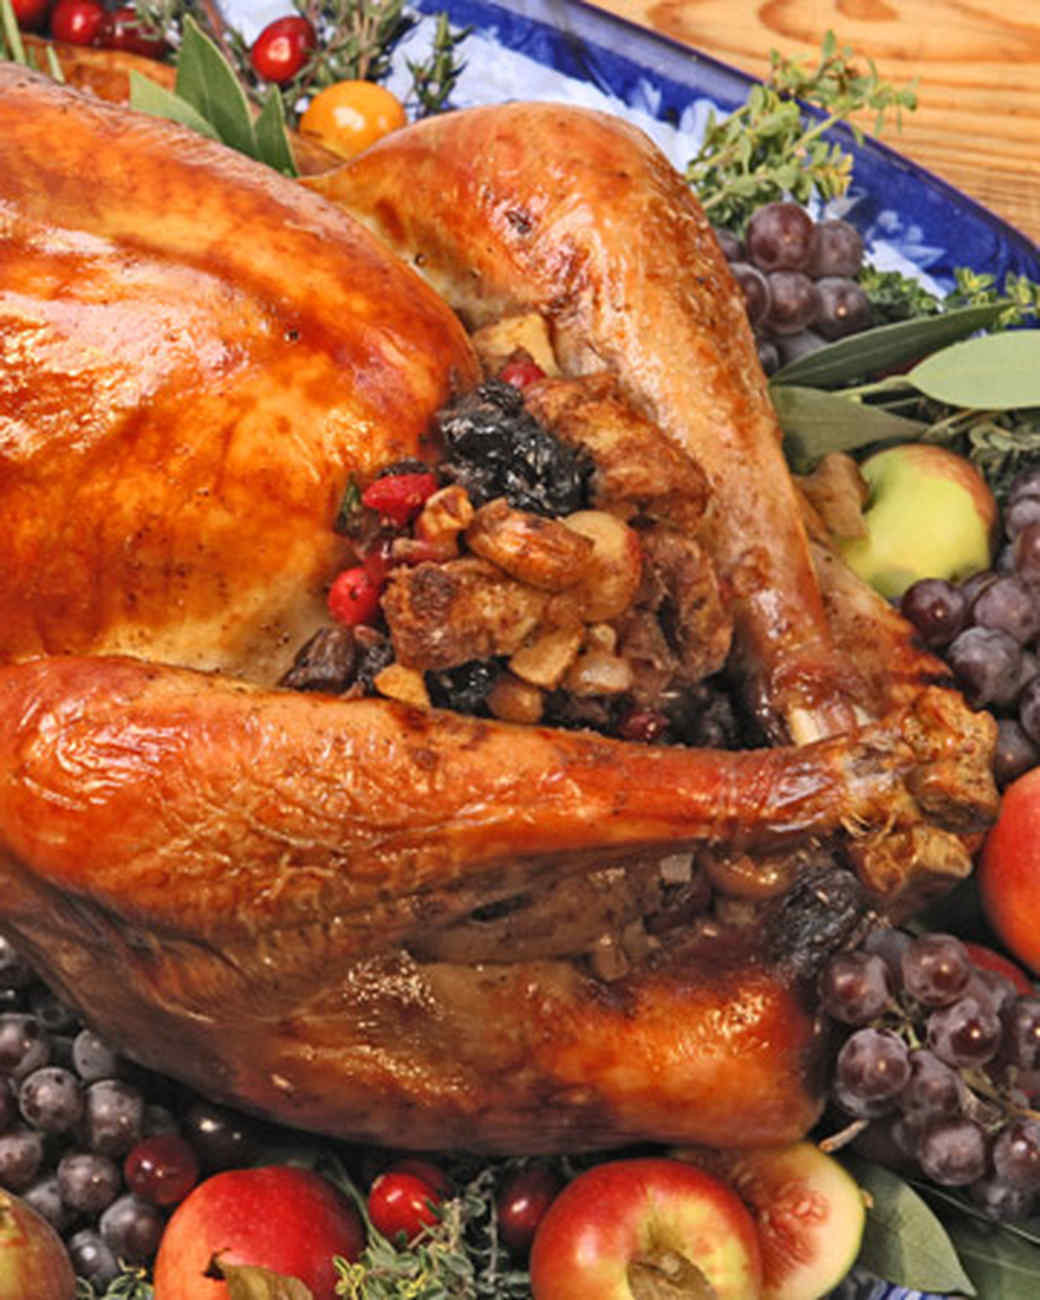 Thanksgiving Turkey Recipe With Stuffing  38 Terrific Thanksgiving Turkey Recipes